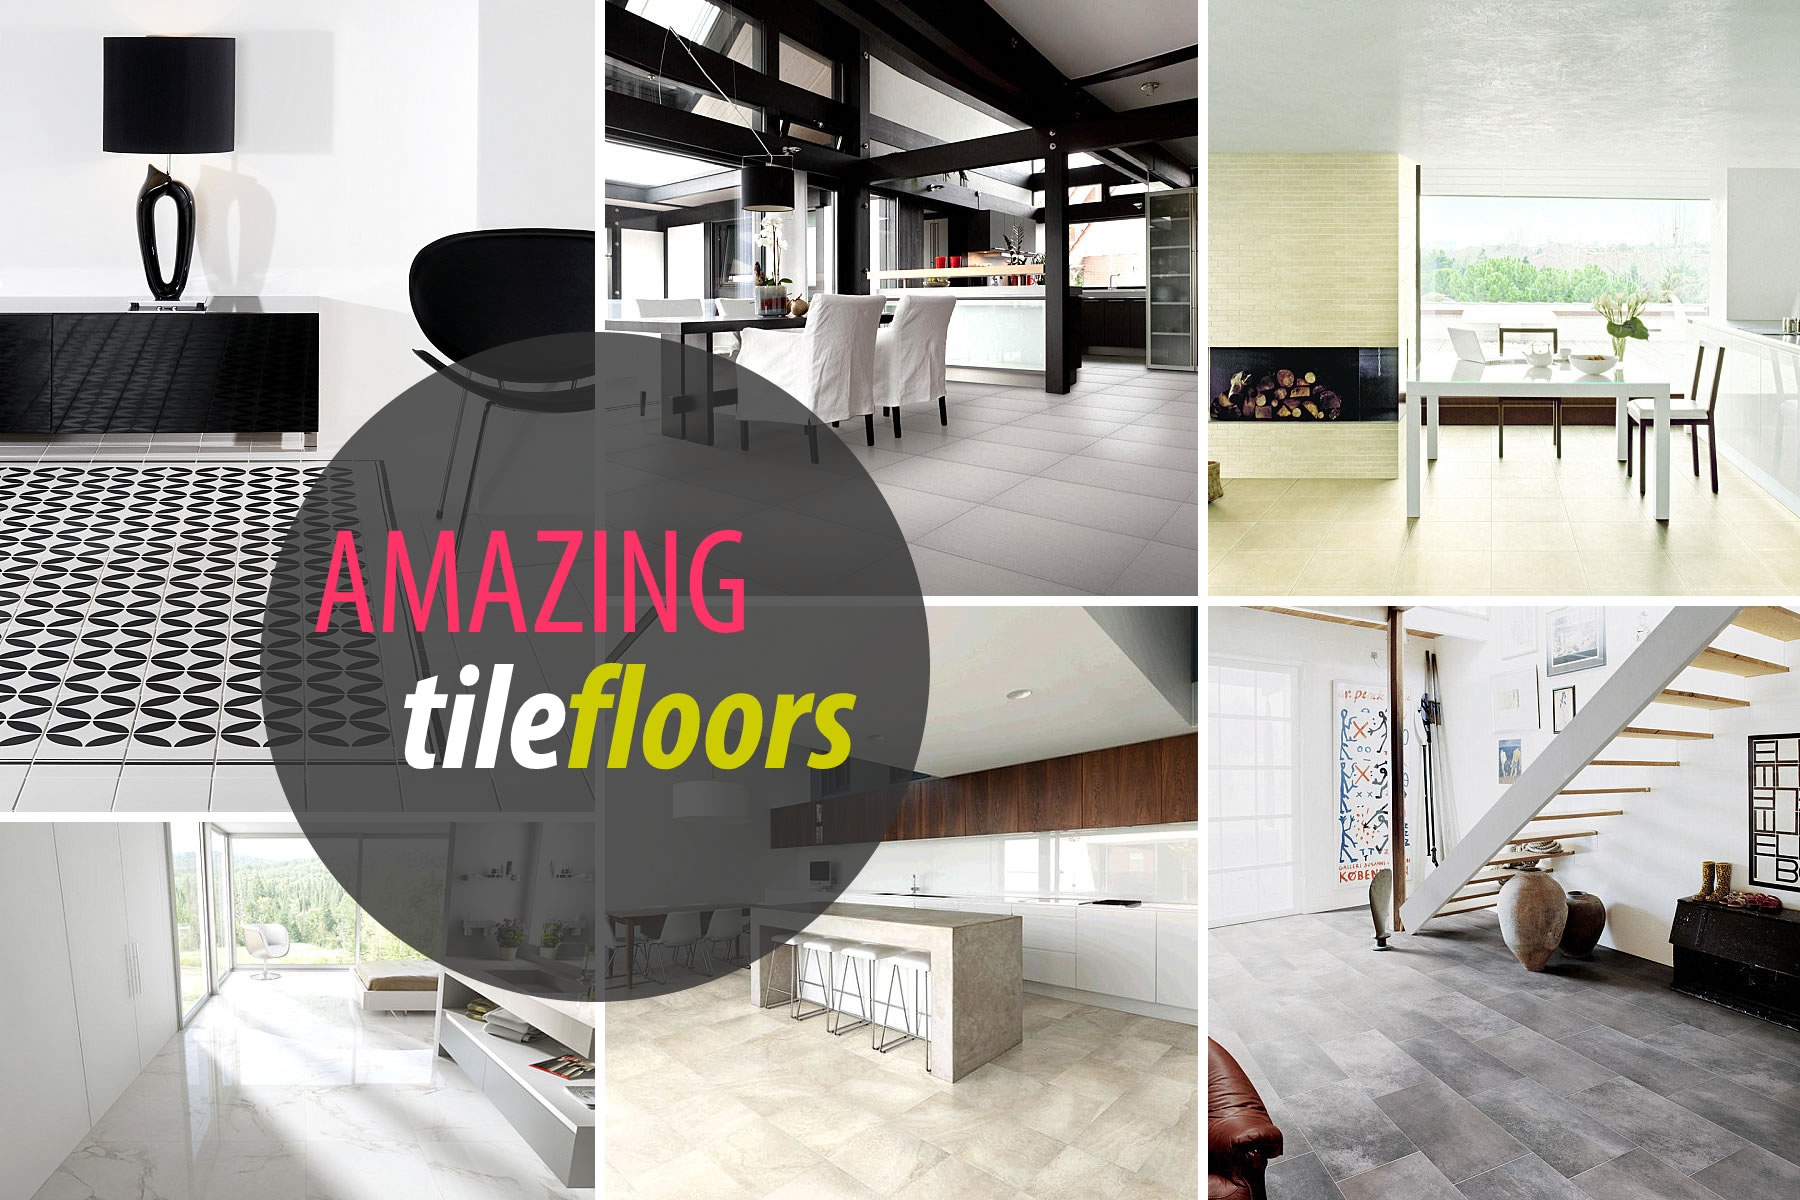 ile Flooring Design Ideas For very oom of Your House - ^